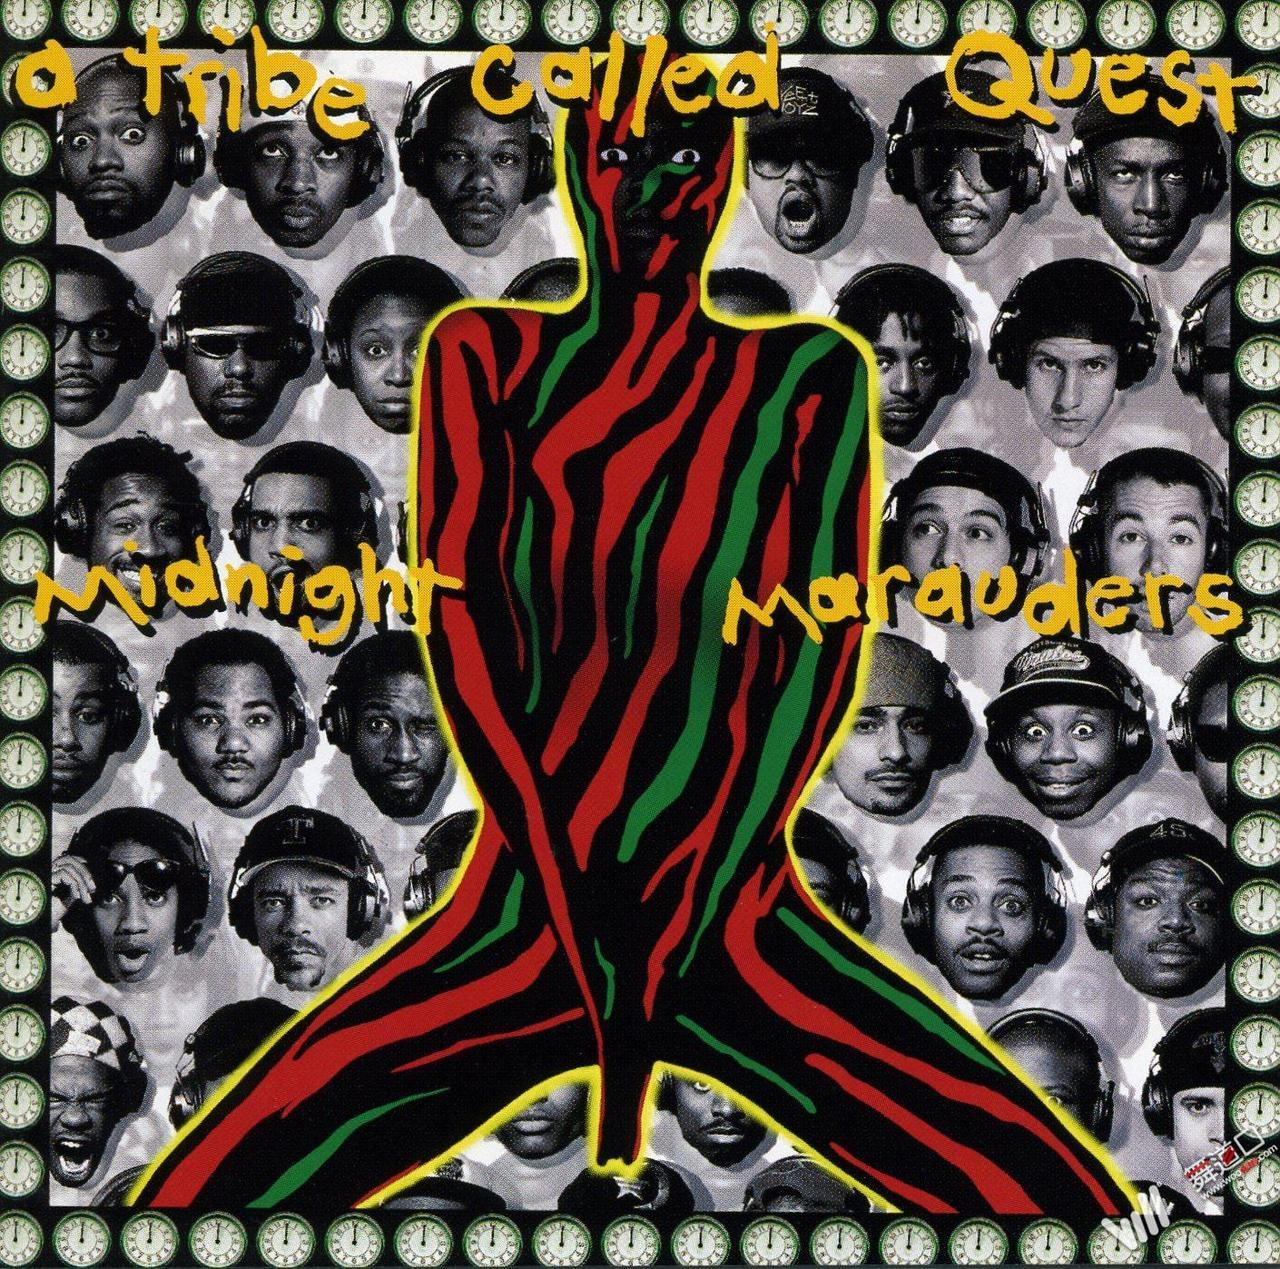 BACK IN THE DAY |11/9/93| A Tribe Called Quest released their third album, Midnight Marauders, on Jive Records.